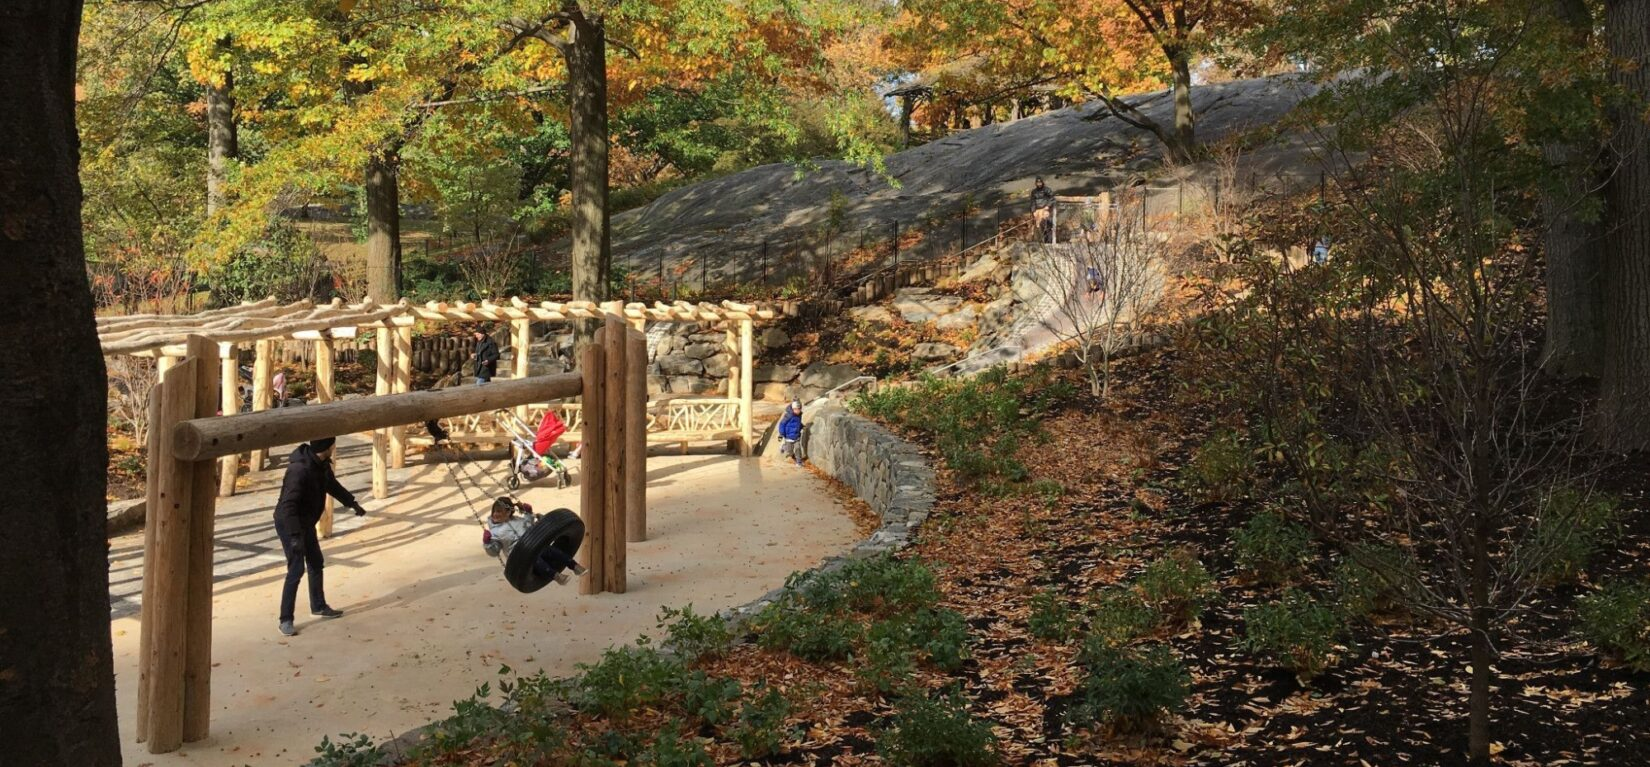 A parent and child enjoy the swing set of a playground surrounded by thick autumnal foliage